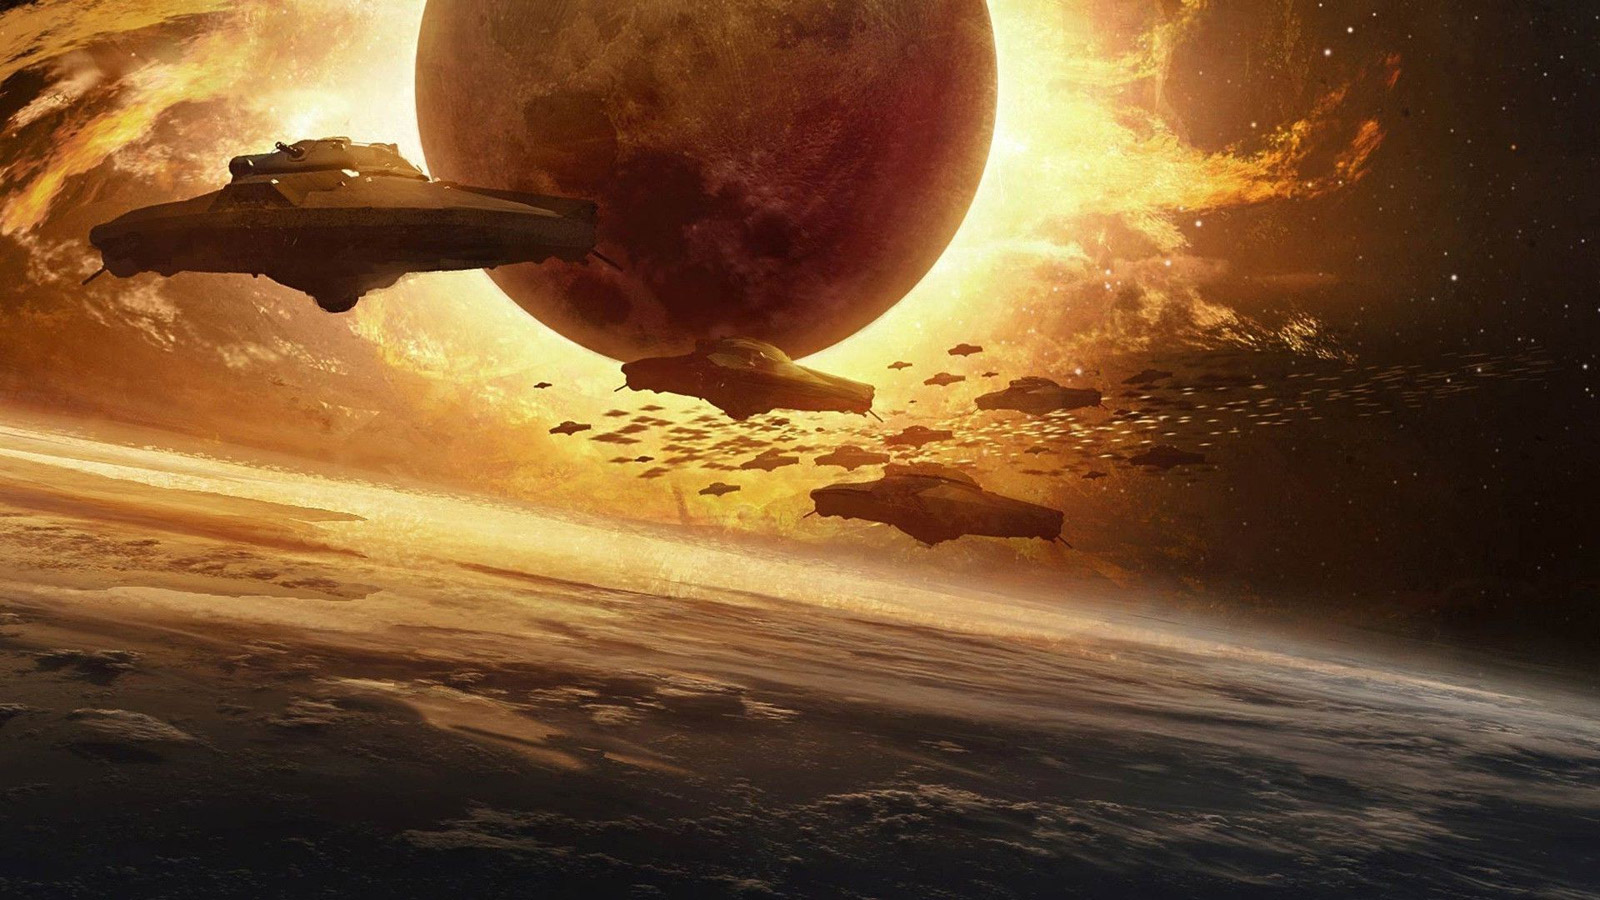 unidentified flying object planet